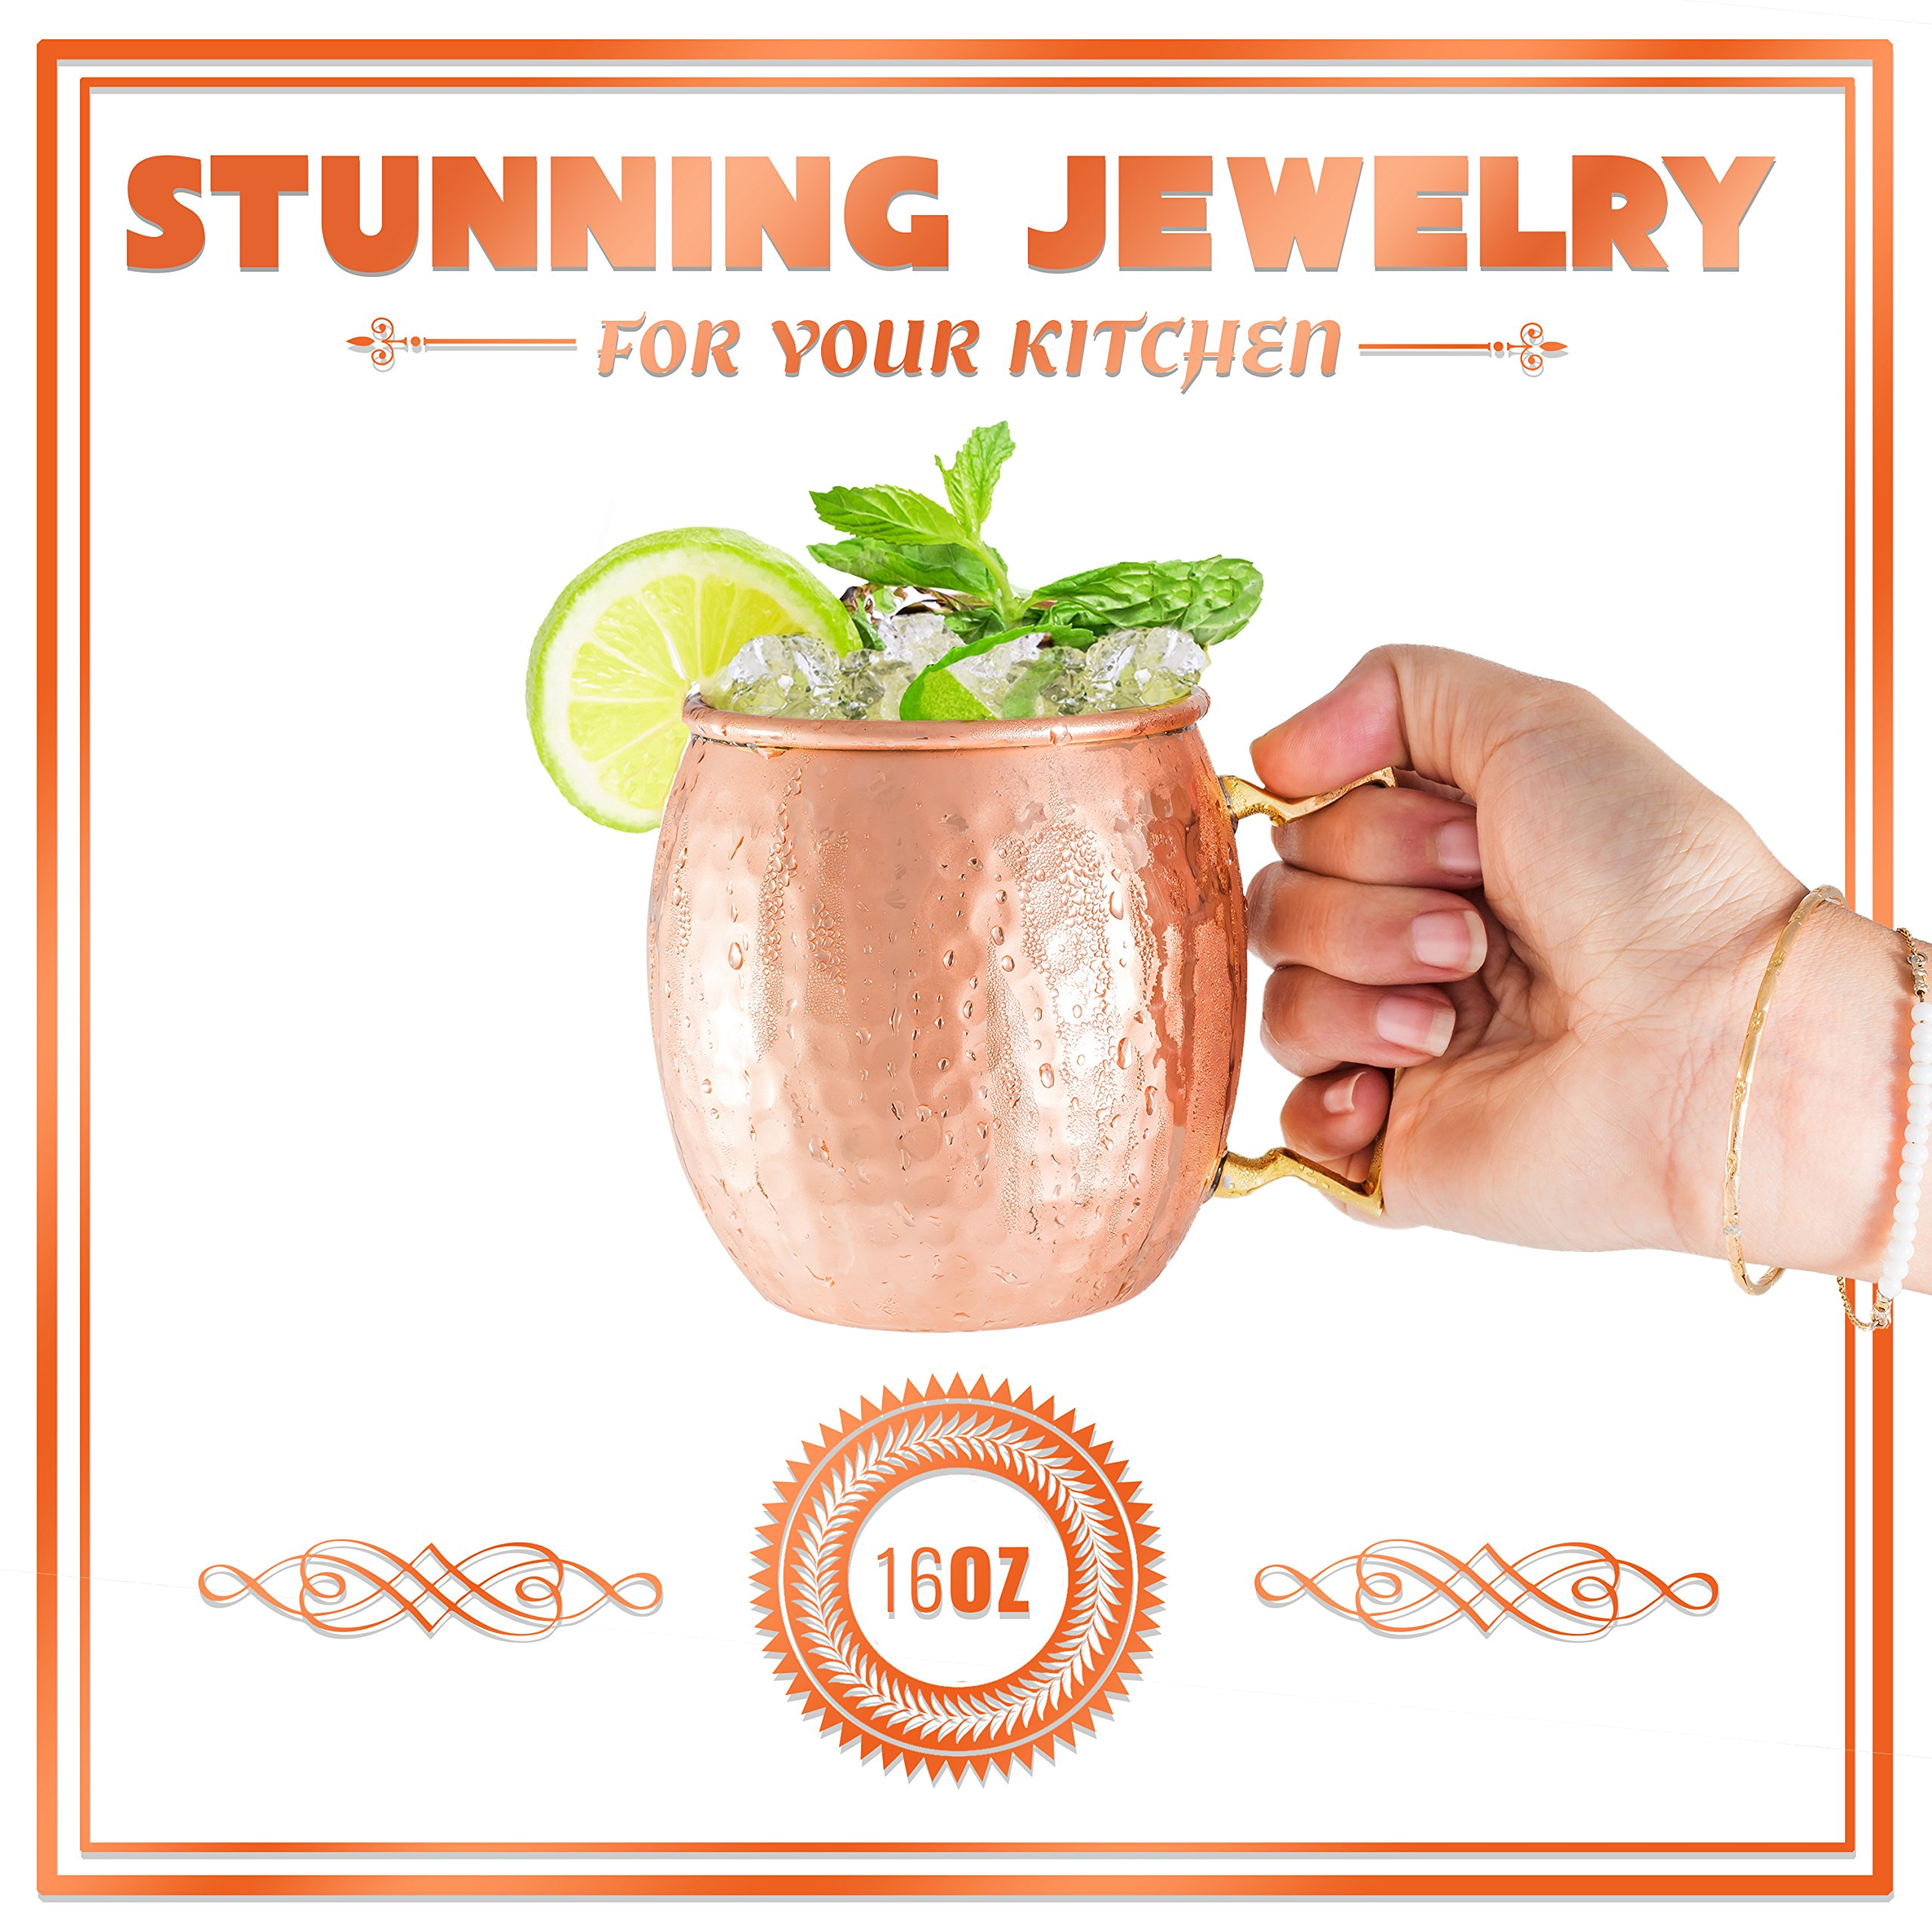 Moscow Mule Mugs 100% Solid Copper, Hammered, Gift Set of 4, No Nickel - Food Safe, 16oz, BONUS: 4 Straws + 1 Shot Glass & 2 E-Books by Copper-Bar by Copper-Bar (Image #8)